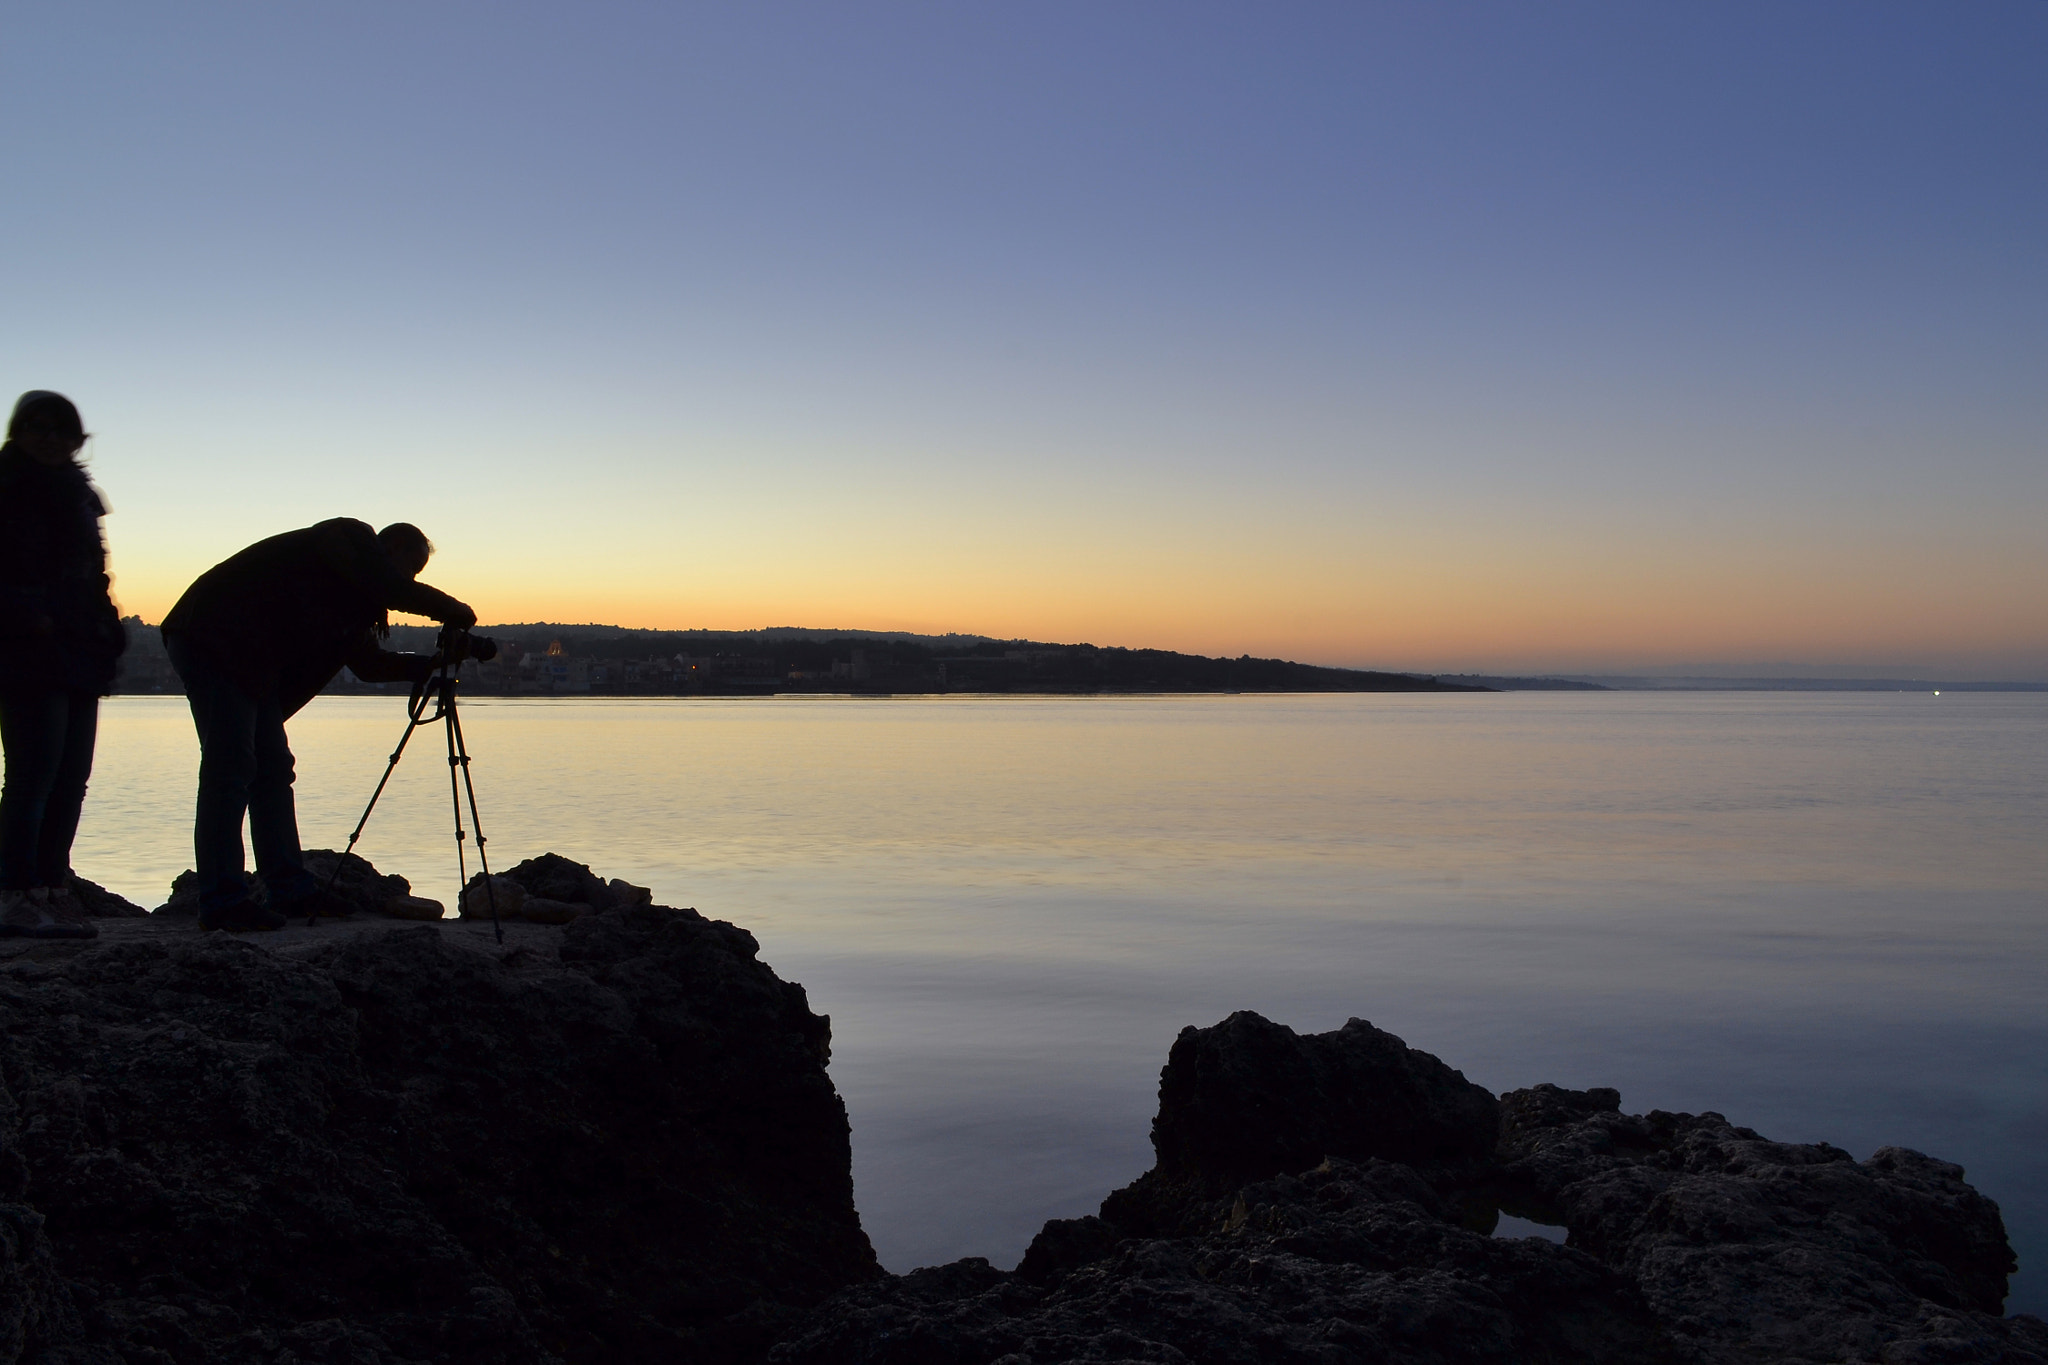 Photograph The photography setting by Salvo Mangiaglia on 500px